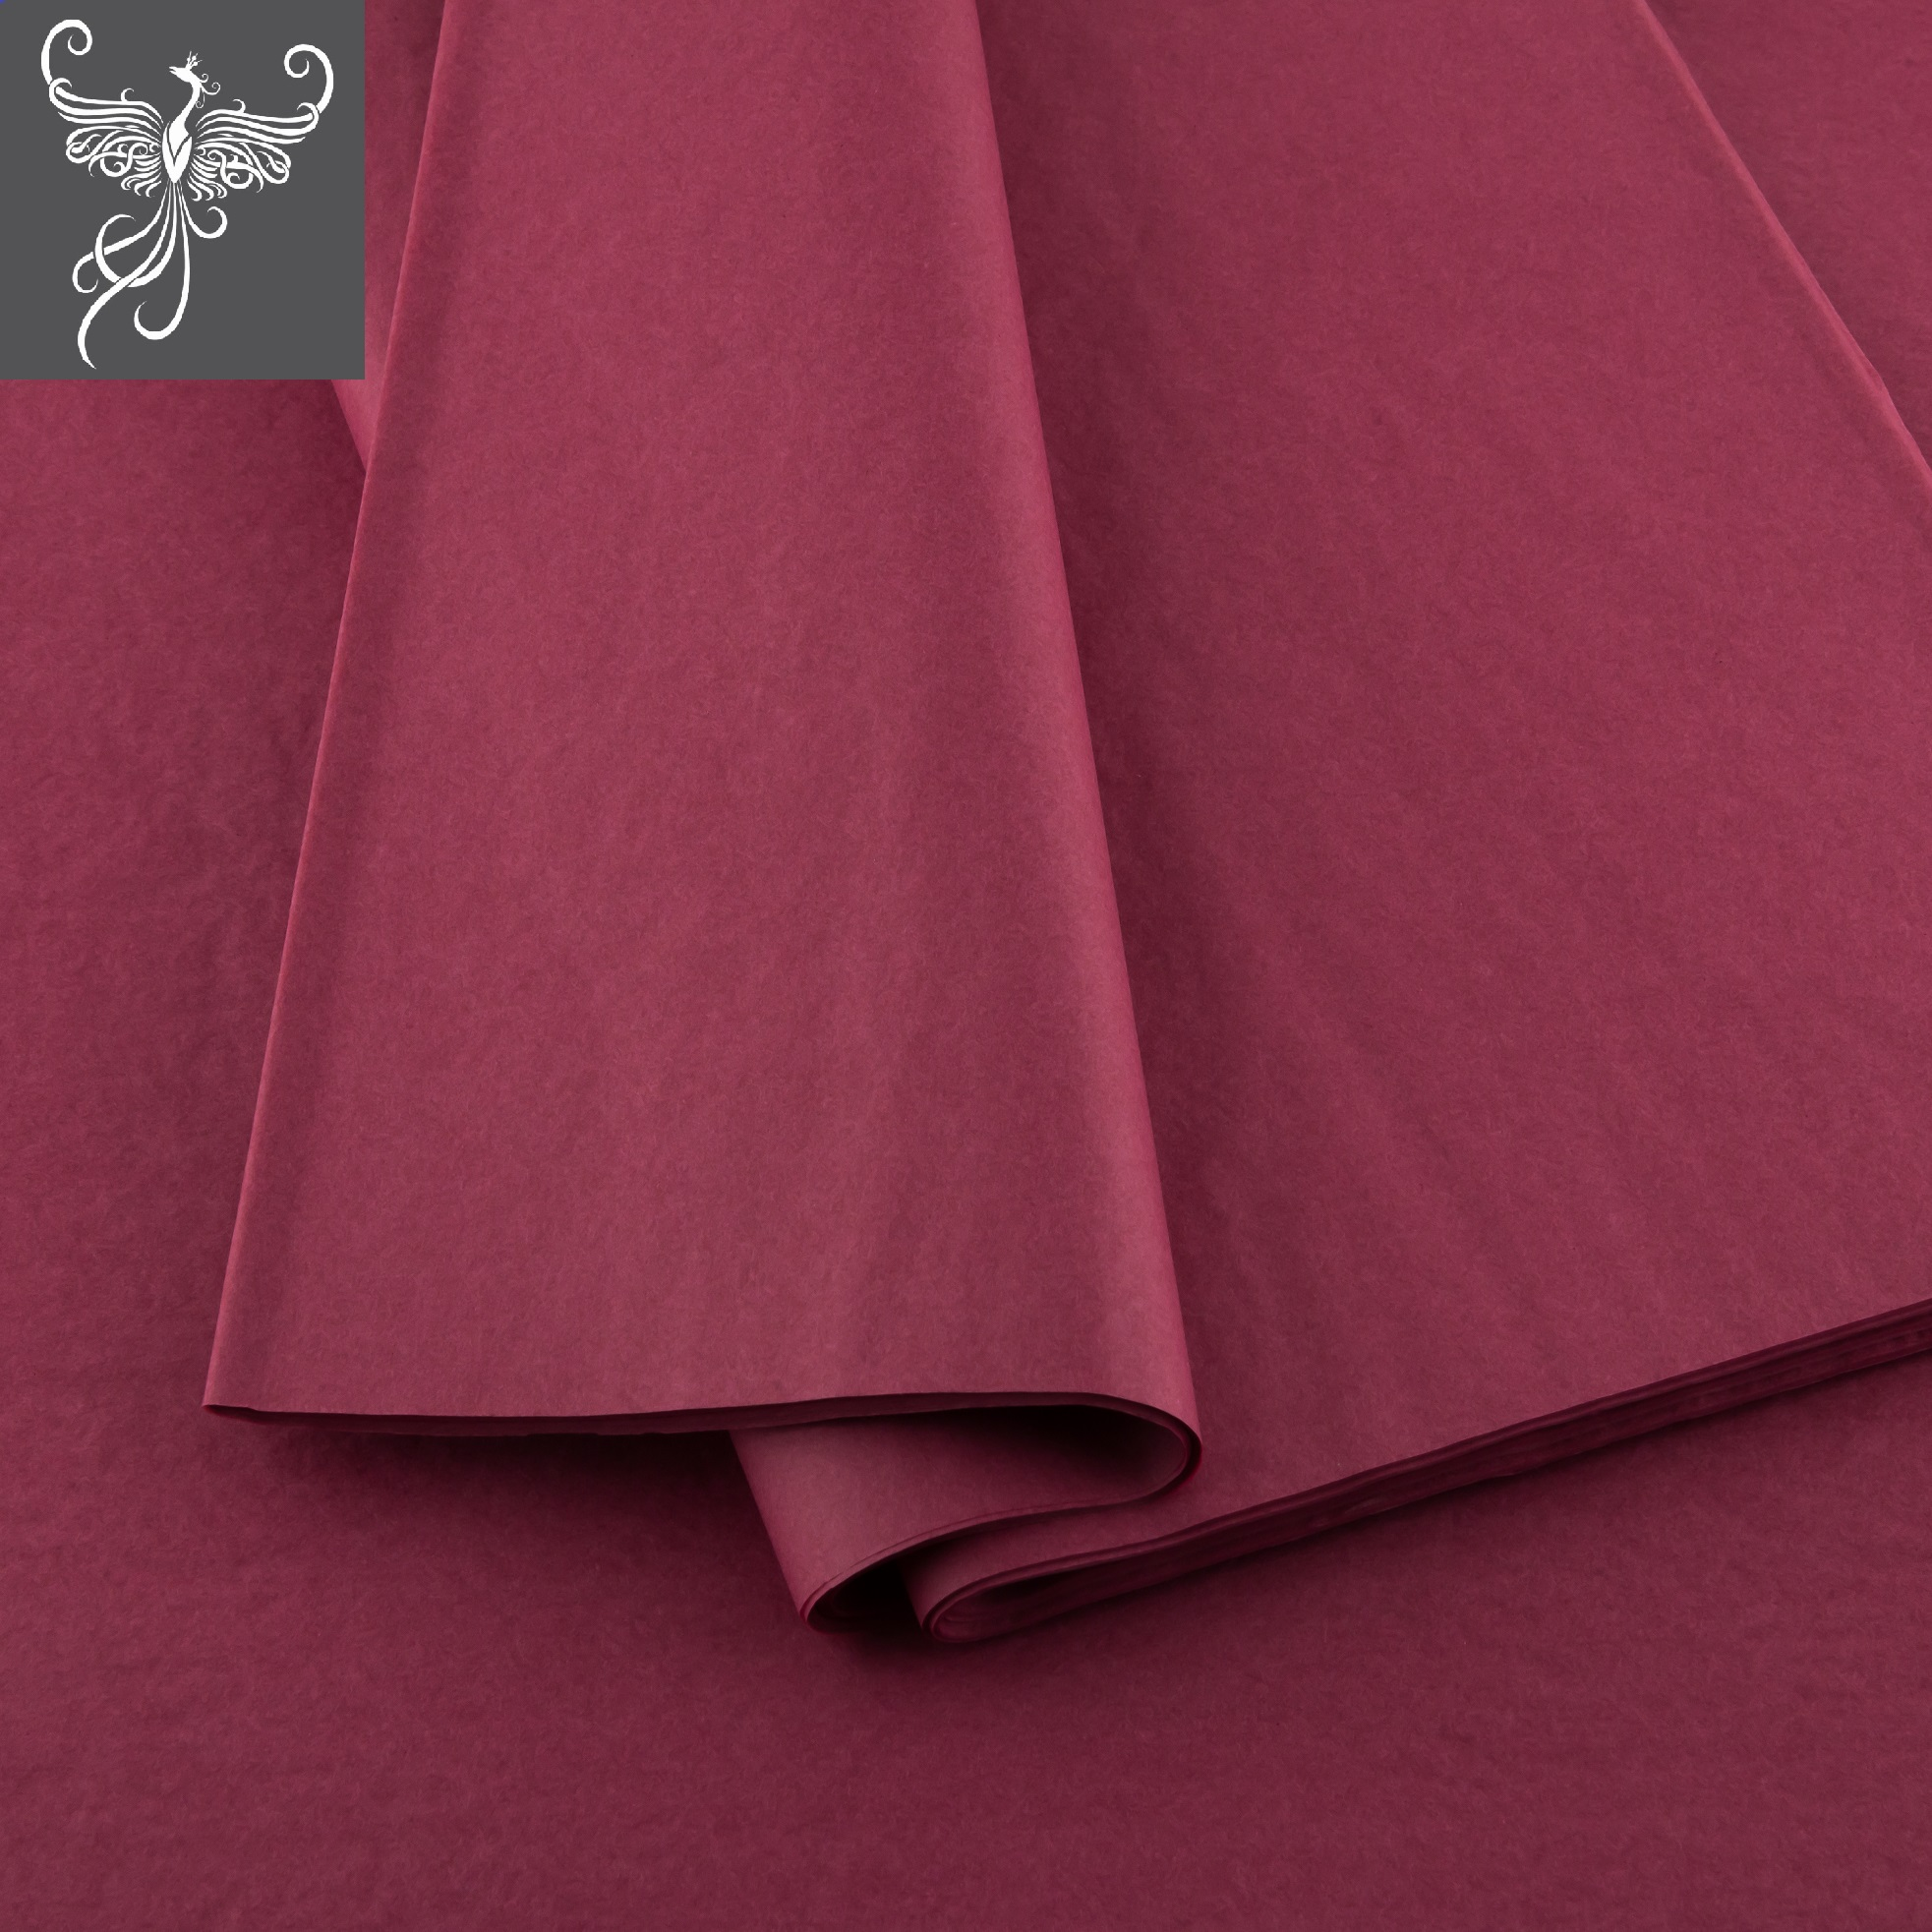 Plain tissue paper bordeaux